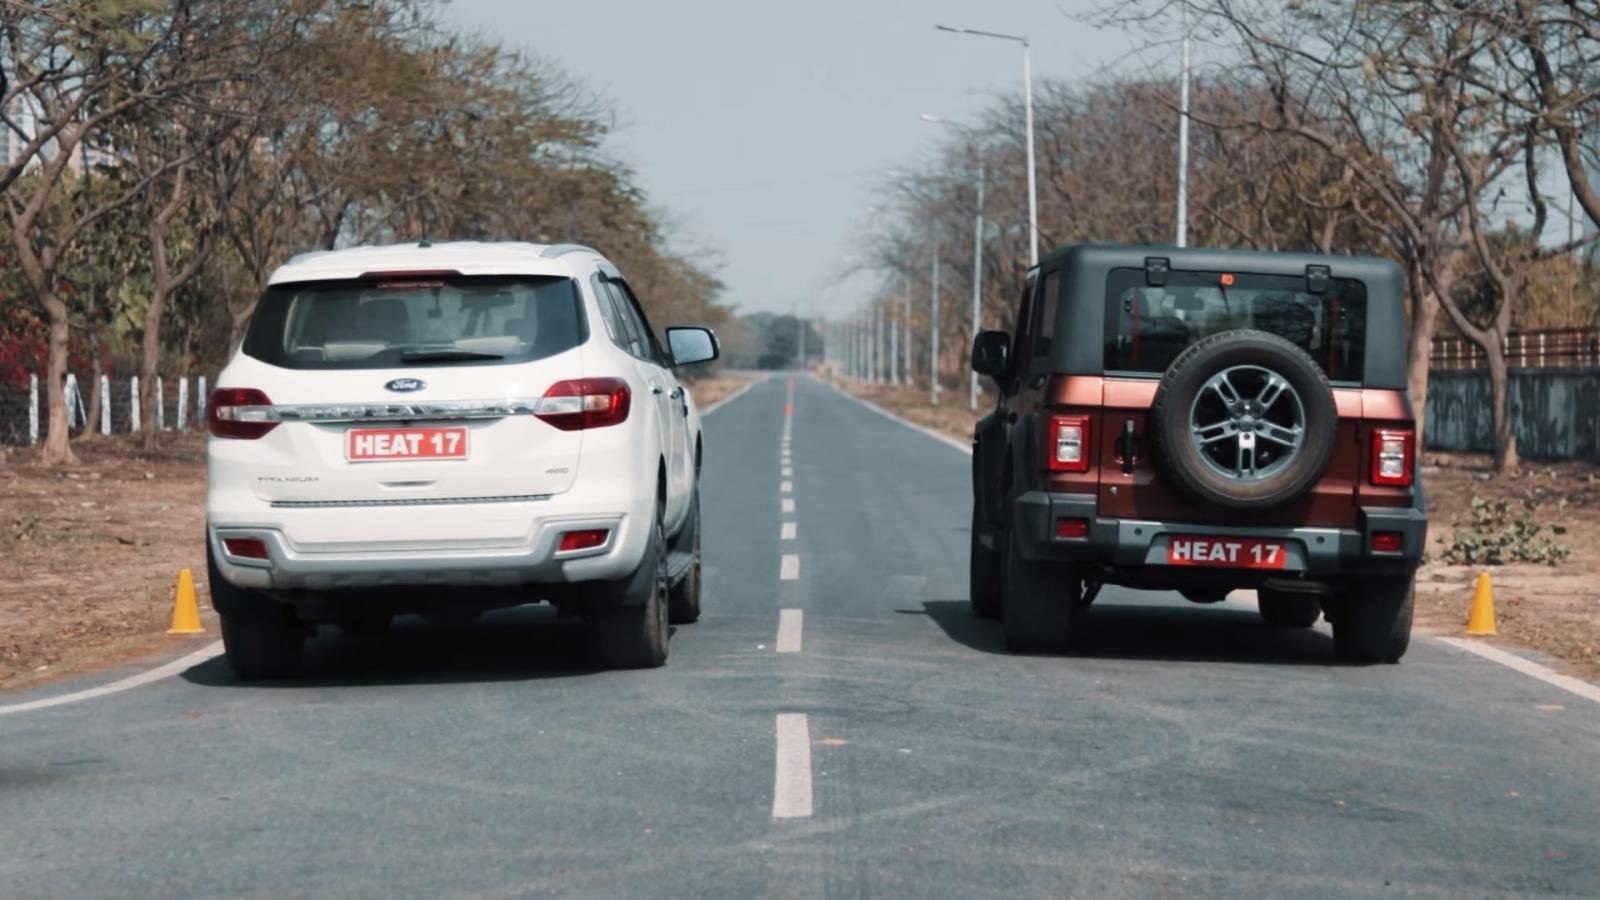 2020 Mahindra Thar Takes On Ford Endeavour In A Drag Race - VIDEO